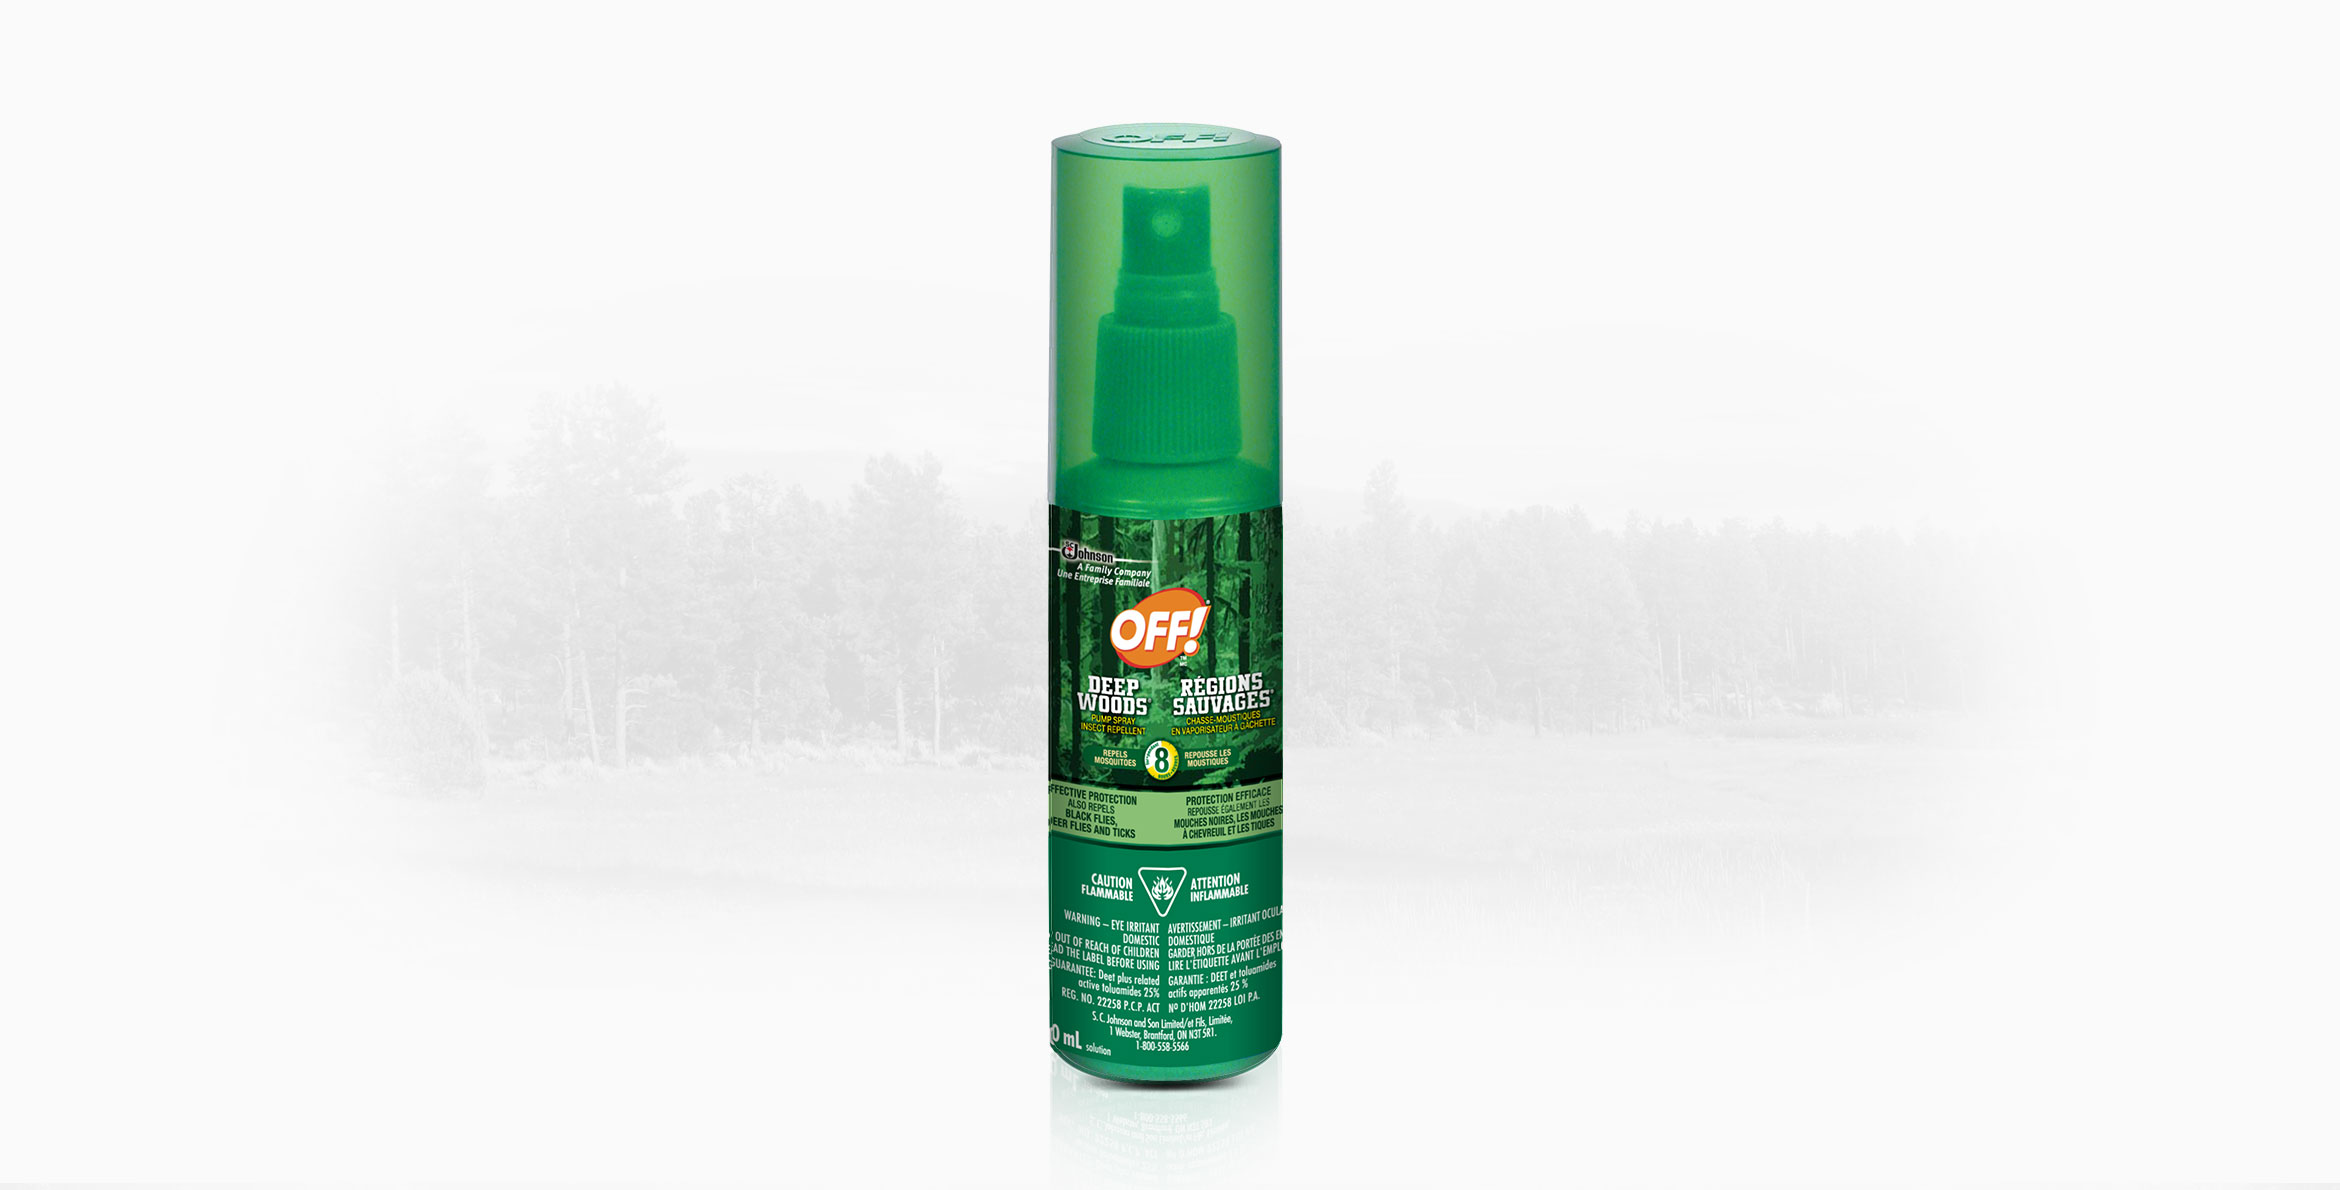 OFF!® Deep Woods® Pump Spray Insect Repellent